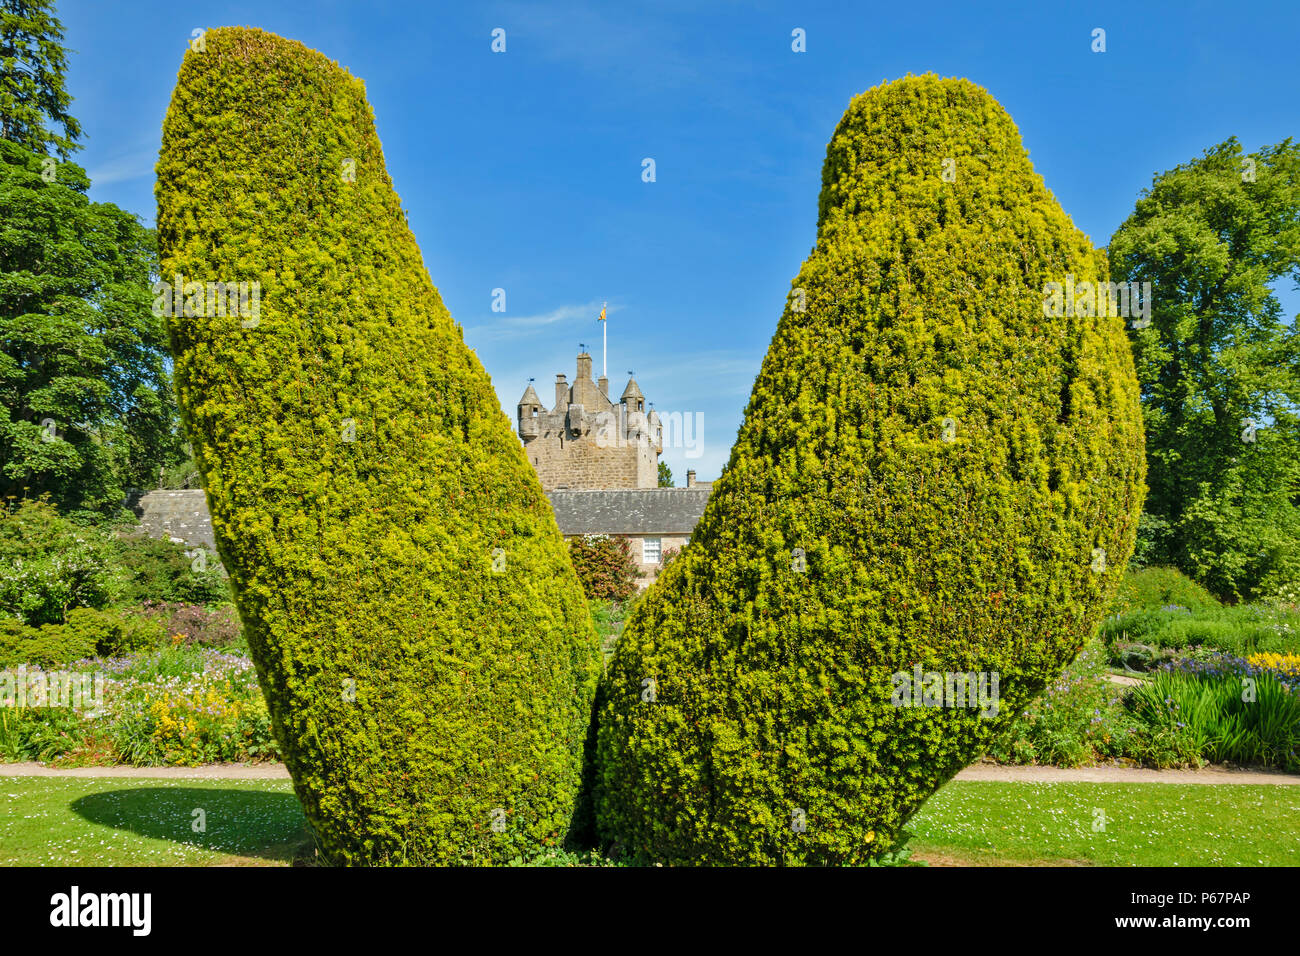 CAWDOR CASTLE NAIRN SCOTLAND TOPIARY SCULPTURE CLIPPED YEW TREES IN THE CASTLE GARDENS - Stock Image